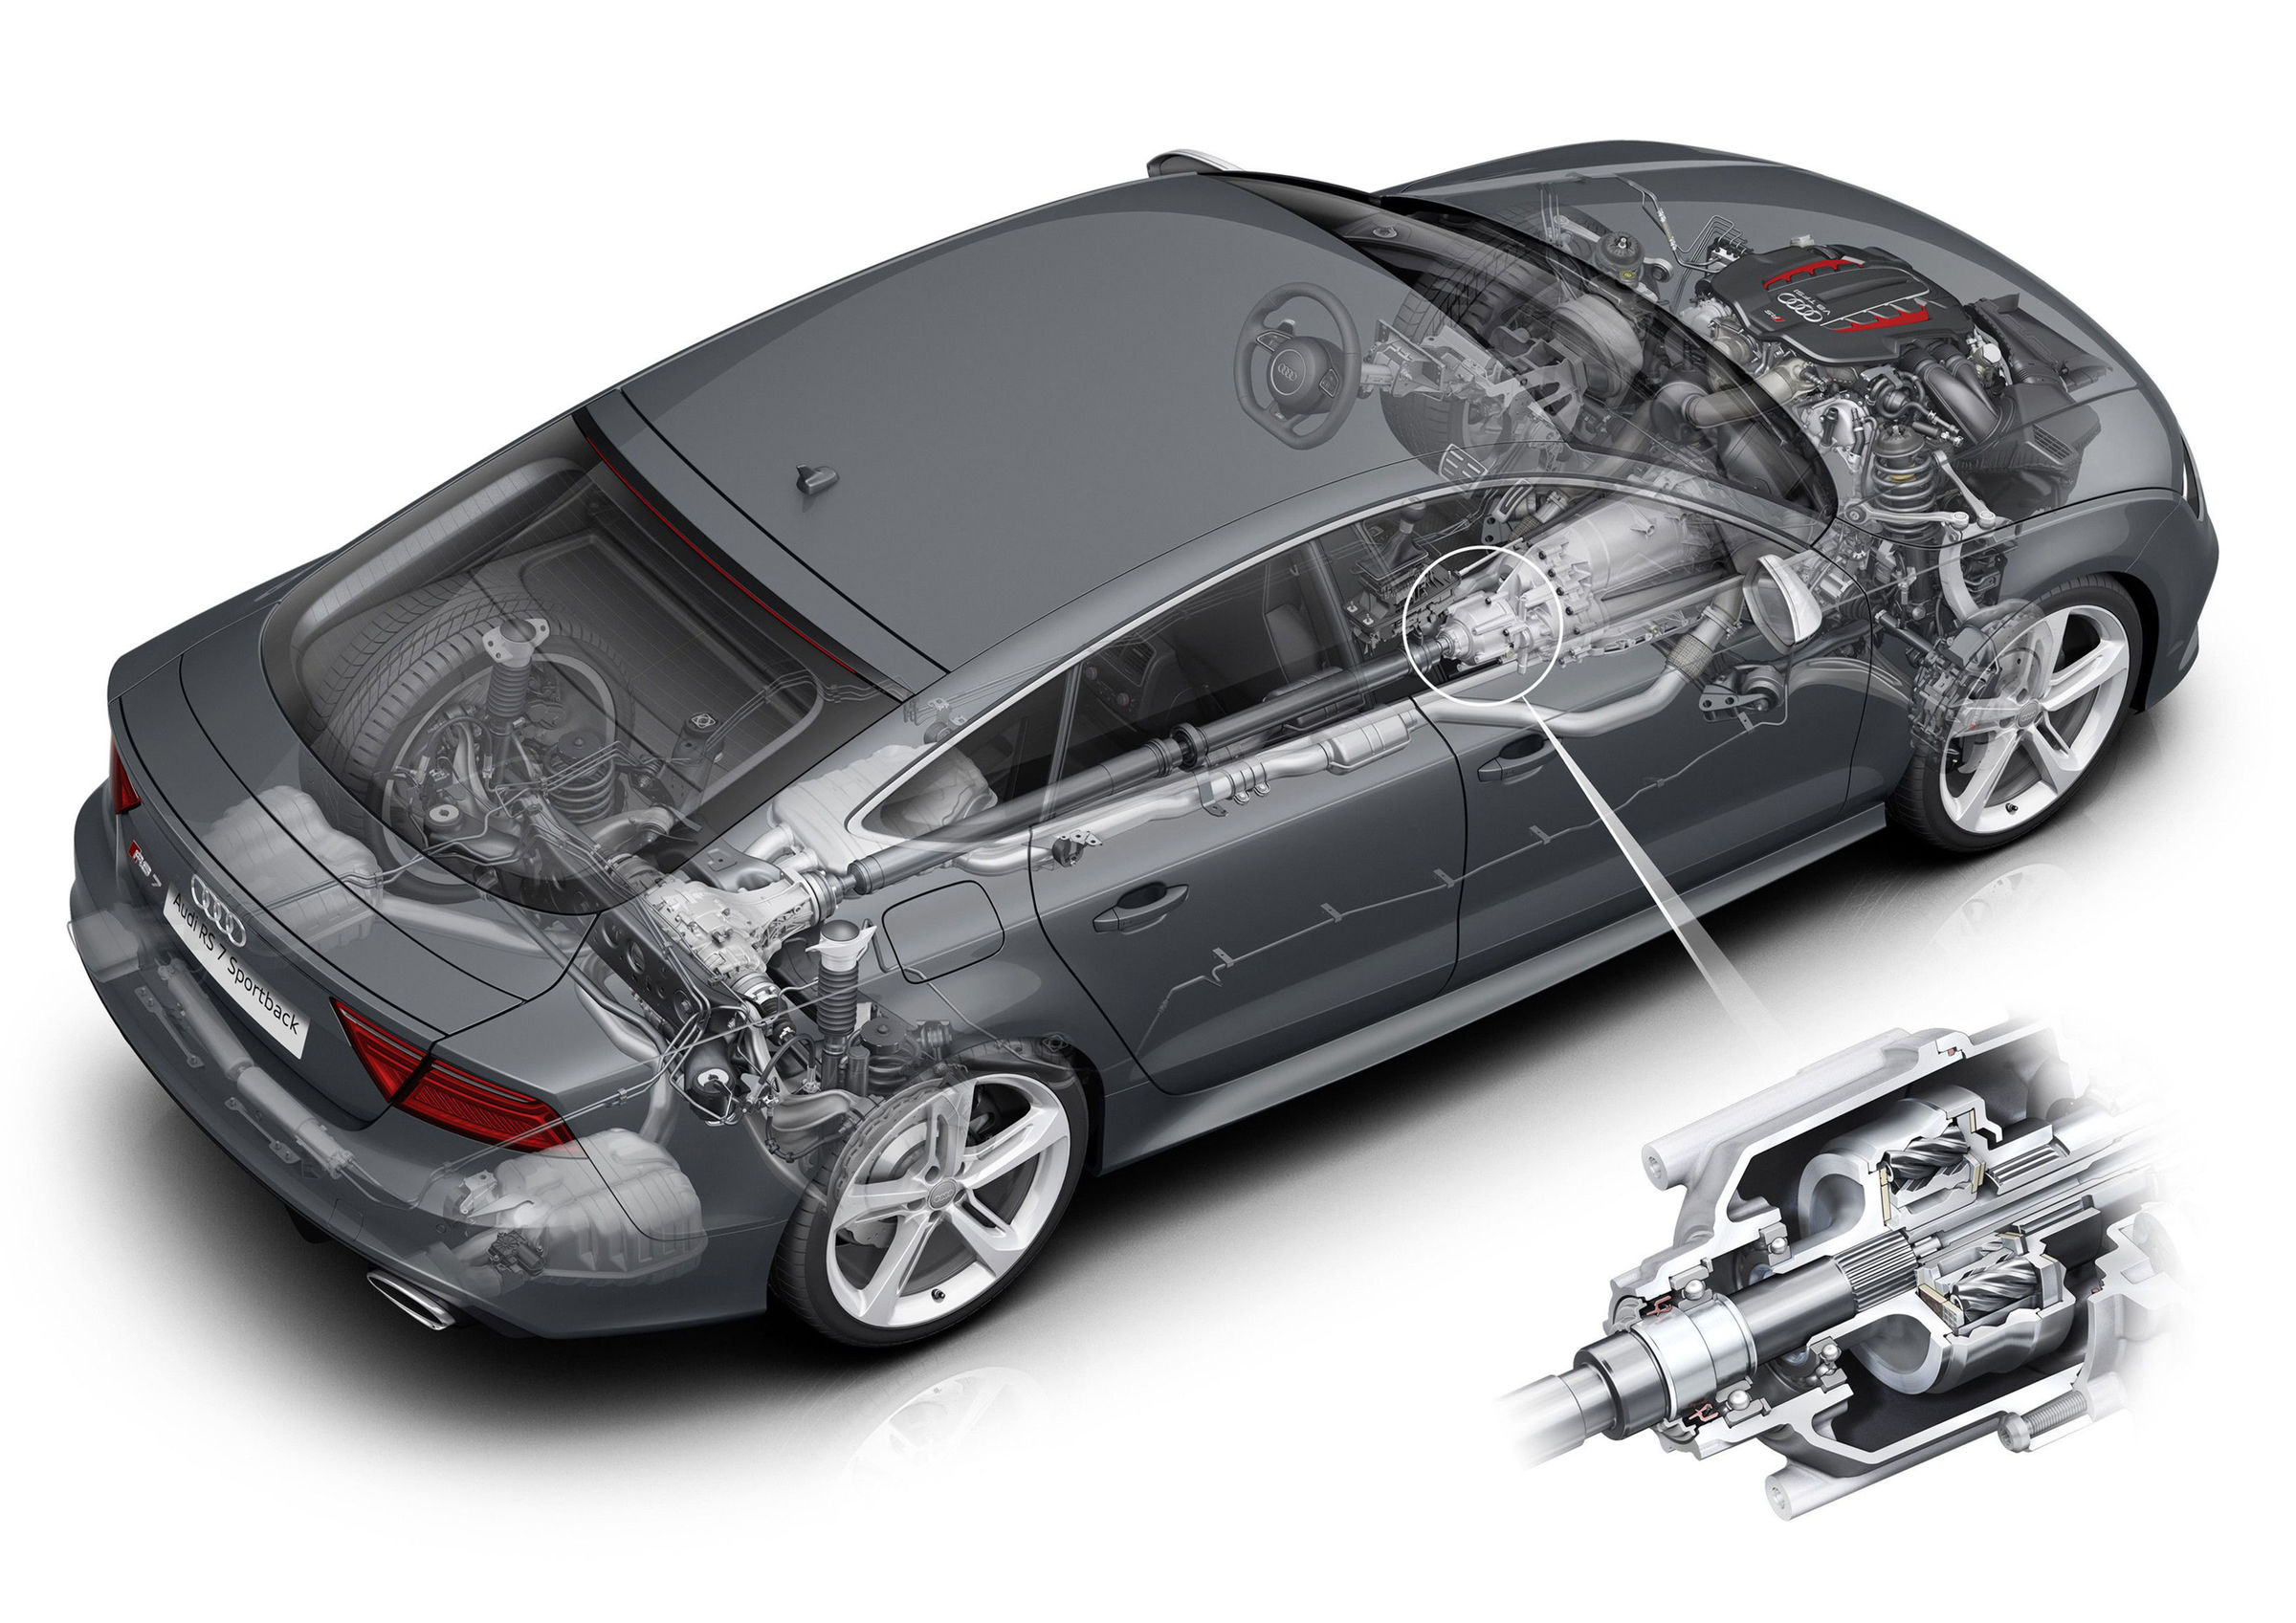 medium resolution of drive system audi mediacenteraudi a8 engine diagram valve motorcycle and car engine scheme 2